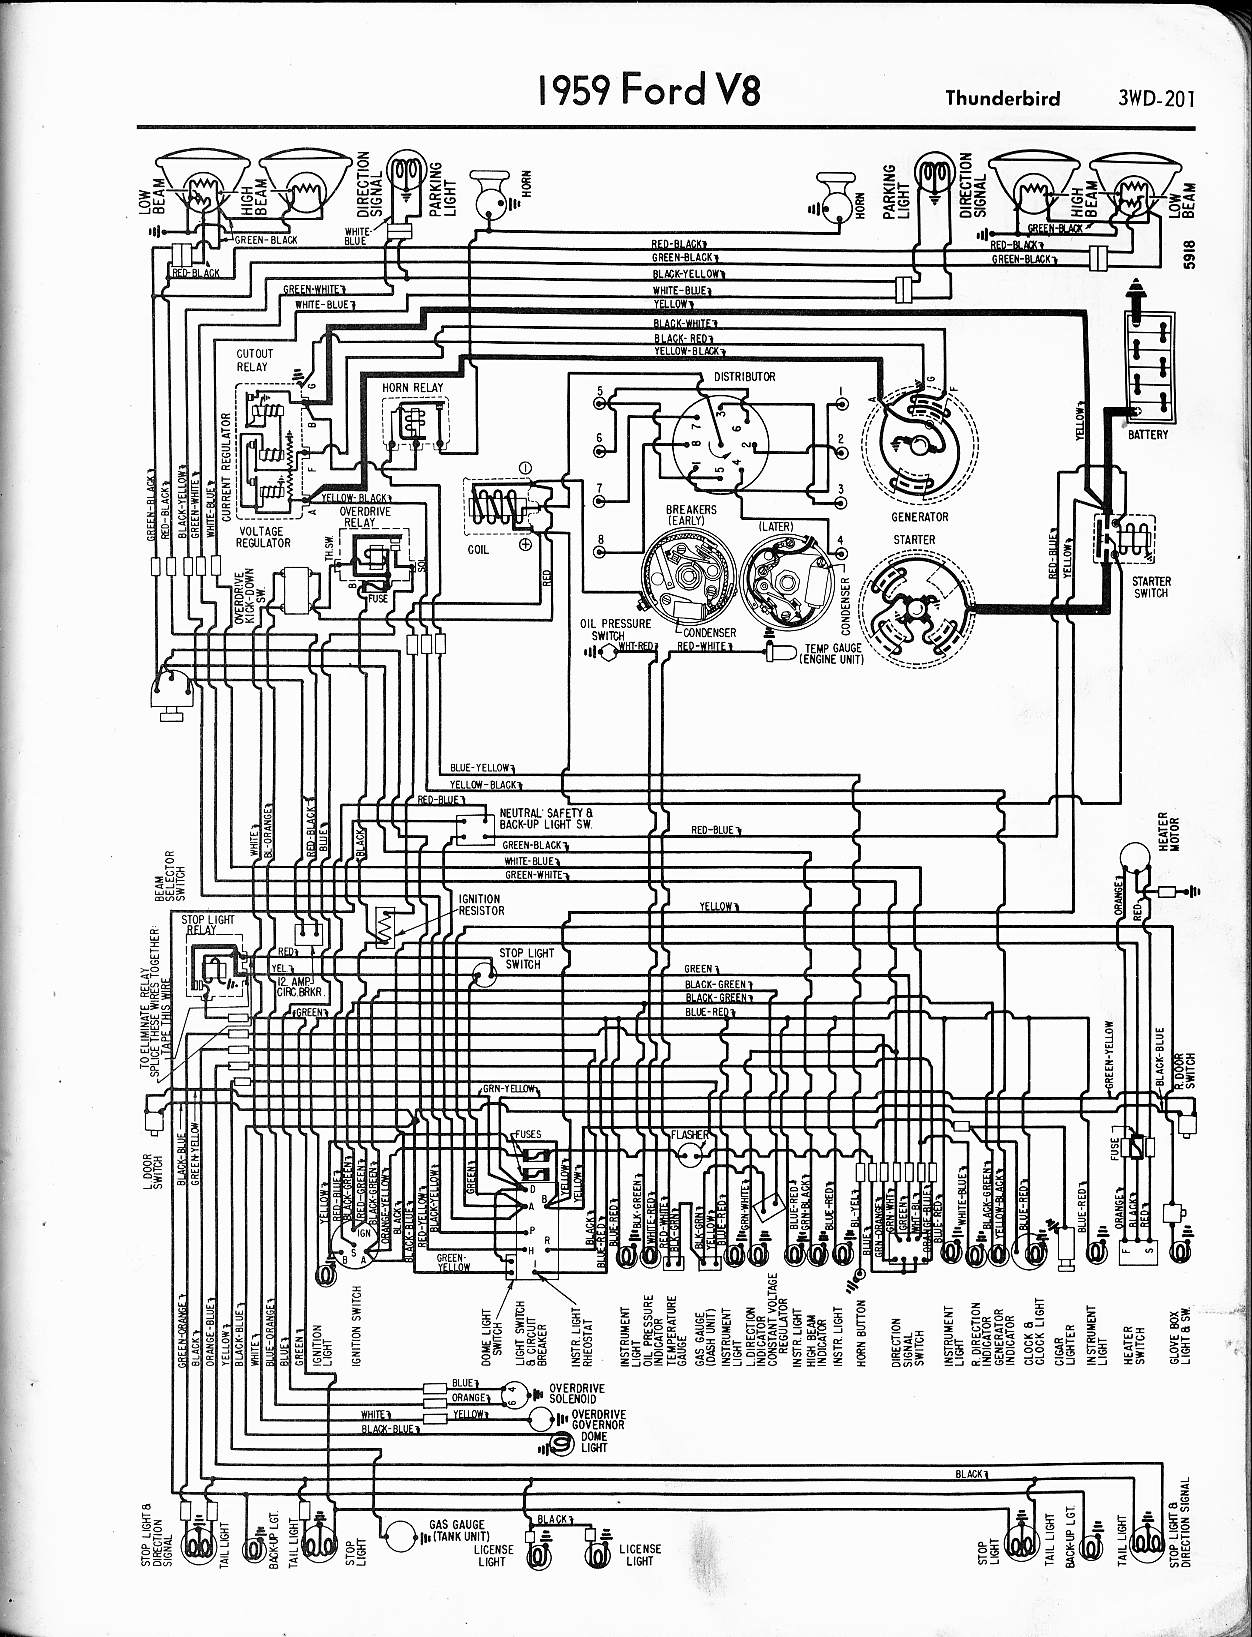 MWire5765 201 57 65 ford wiring diagrams 1972 ford f100 fuse box diagram at soozxer.org